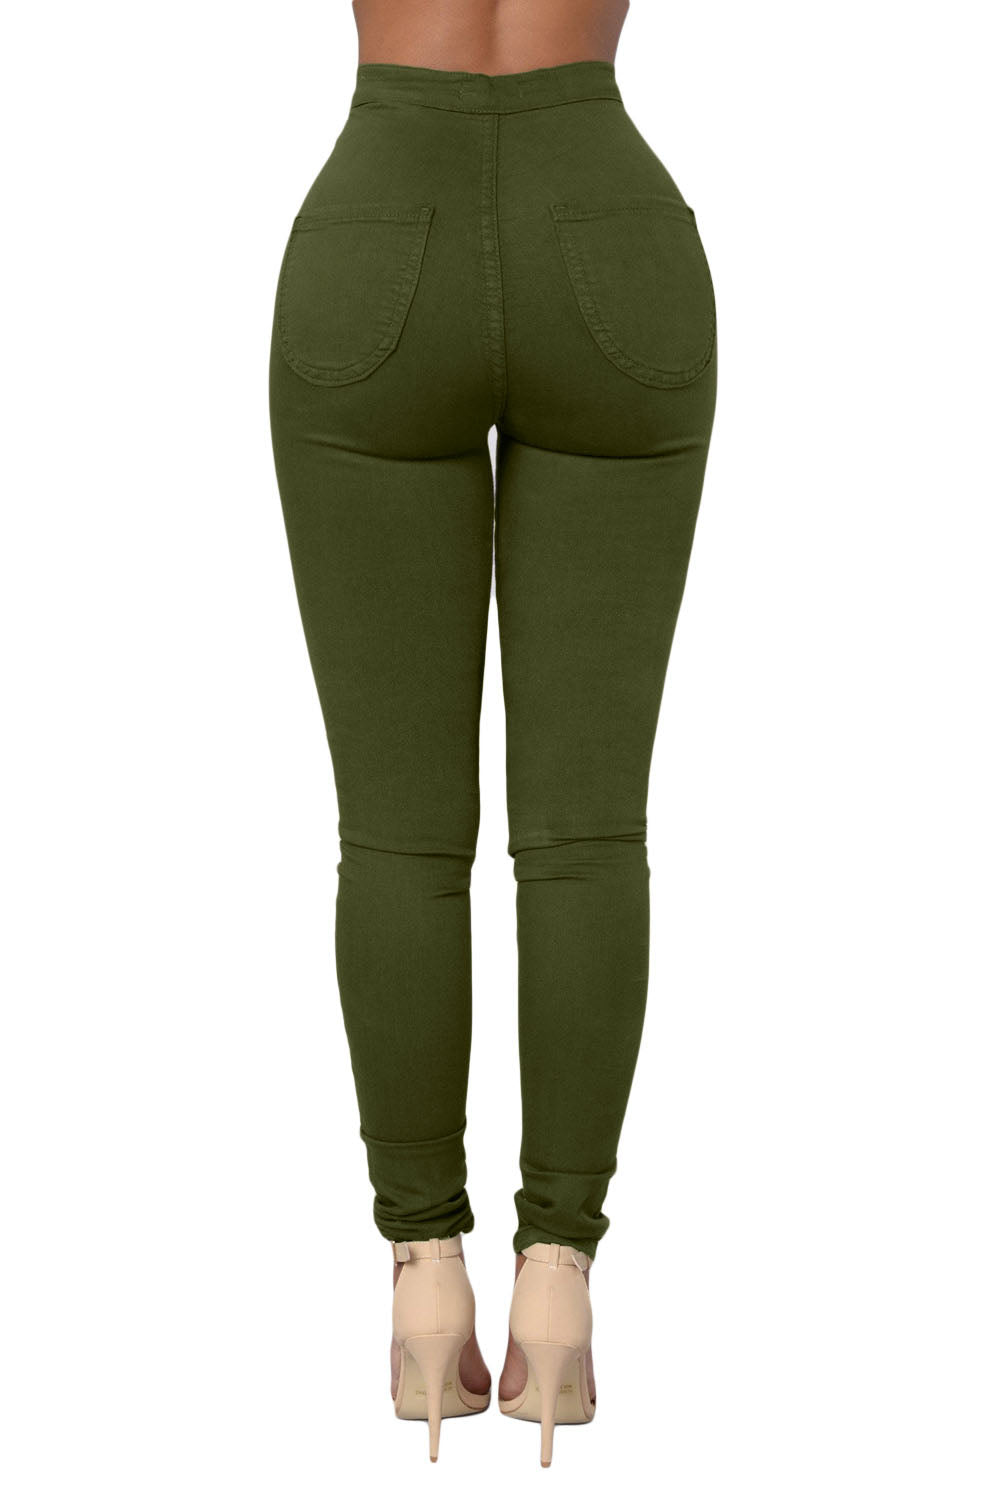 Olive High Waisted Skinny Jeans With Round Pockets LAVELIQ